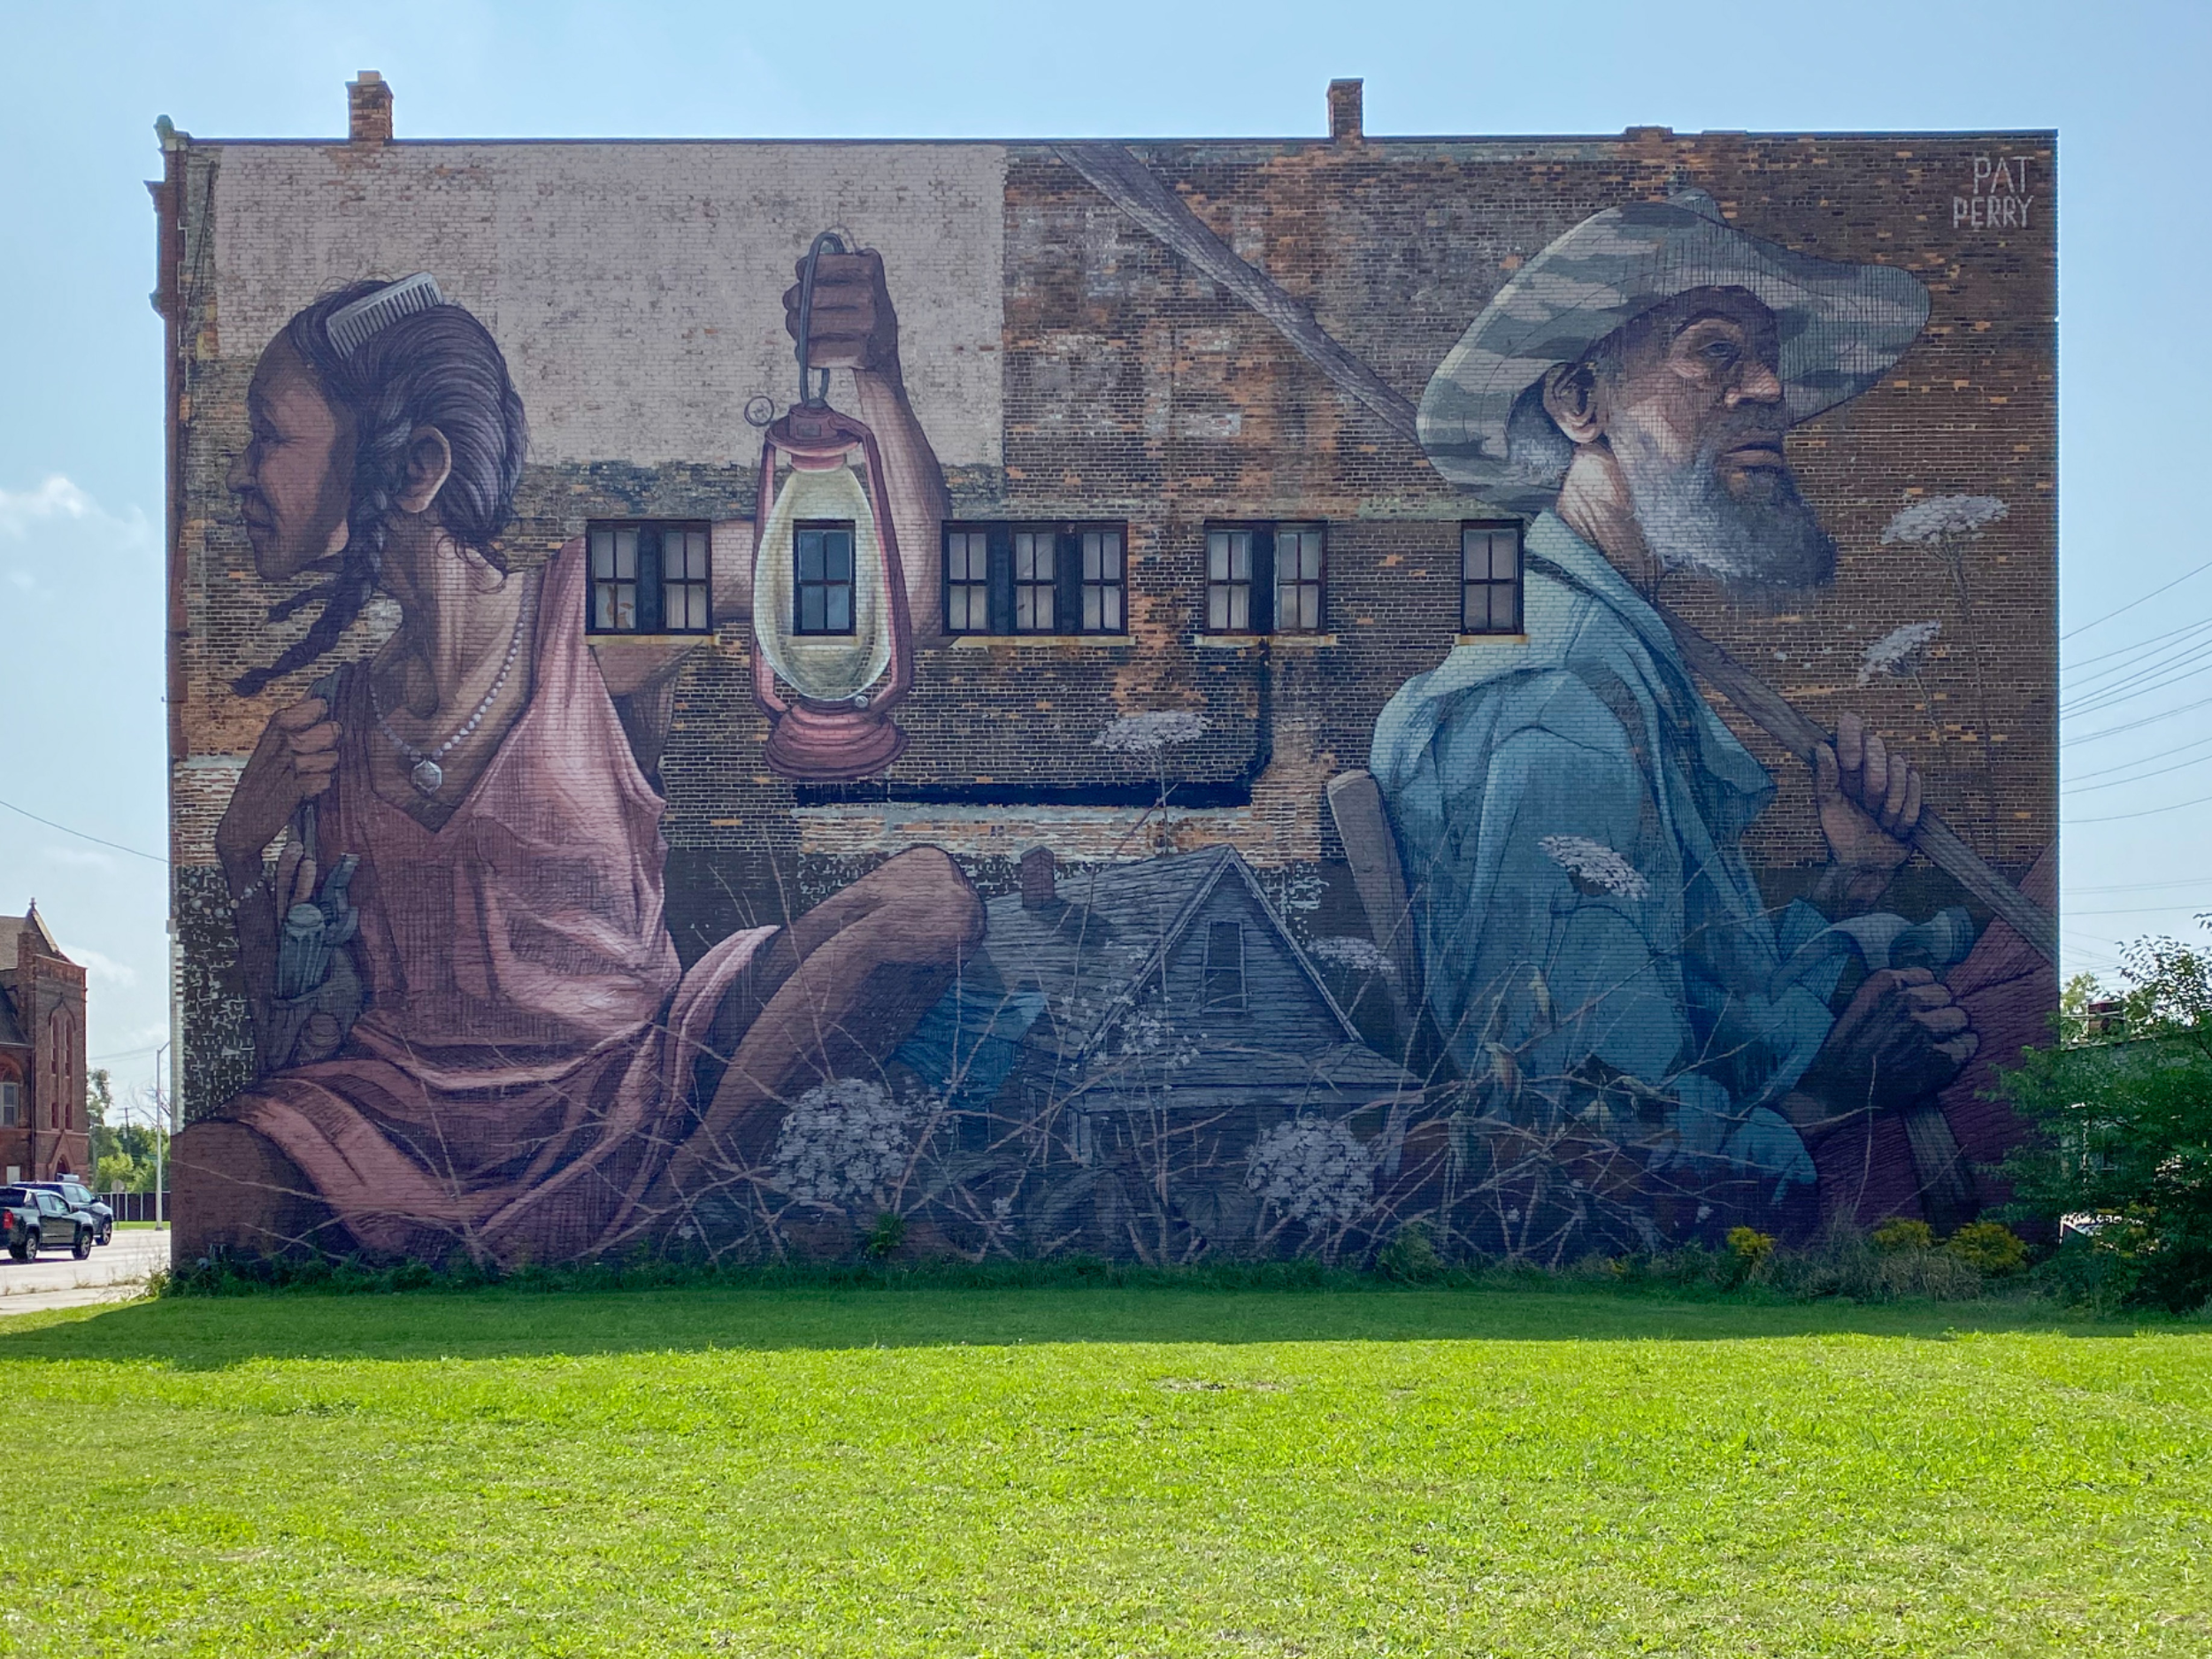 Photo mural on a wall with a young woman holding a lantern and an older man holding a shovel